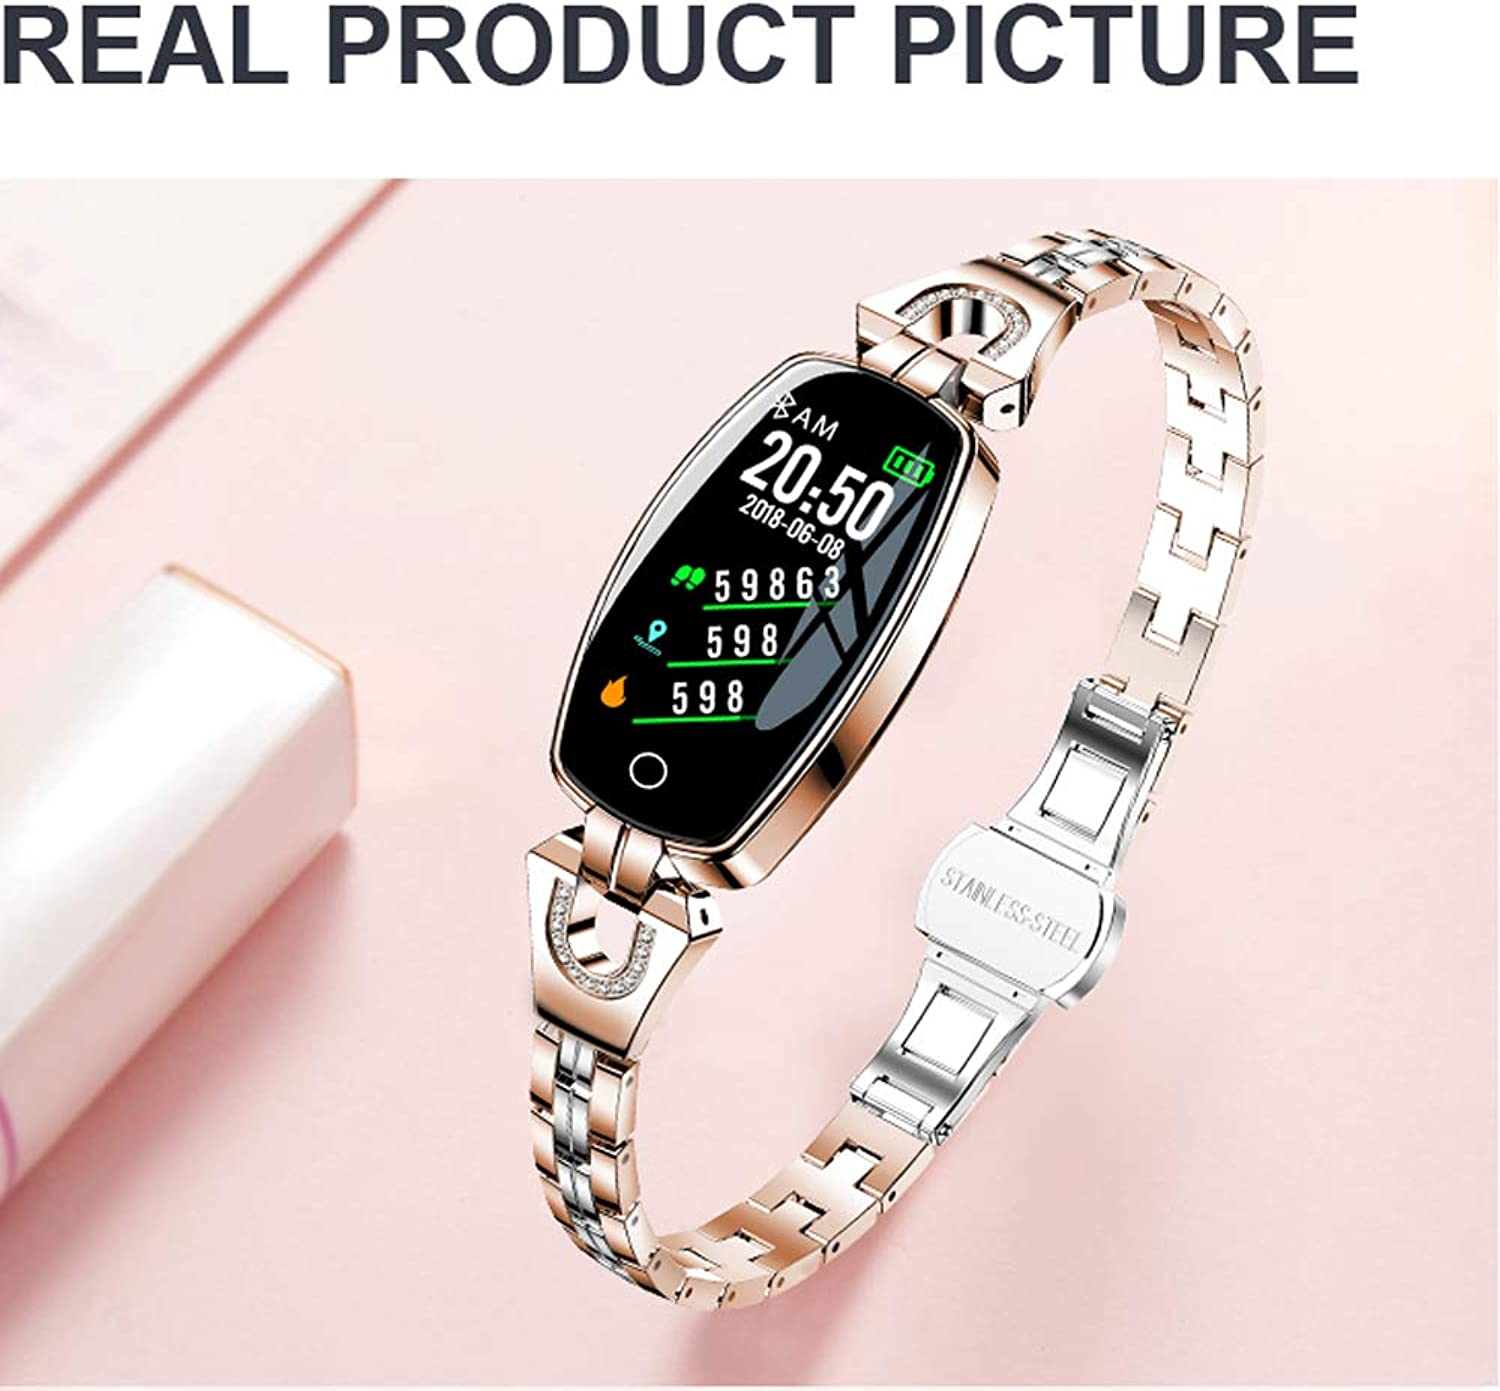 Fitness Watch Waterproof IP67 Fashion Heart Rate Sleep Blood Pressure Monitor Pedometer Touch Screen Fitness Track Smart Bracelet for iOS and Android for Women